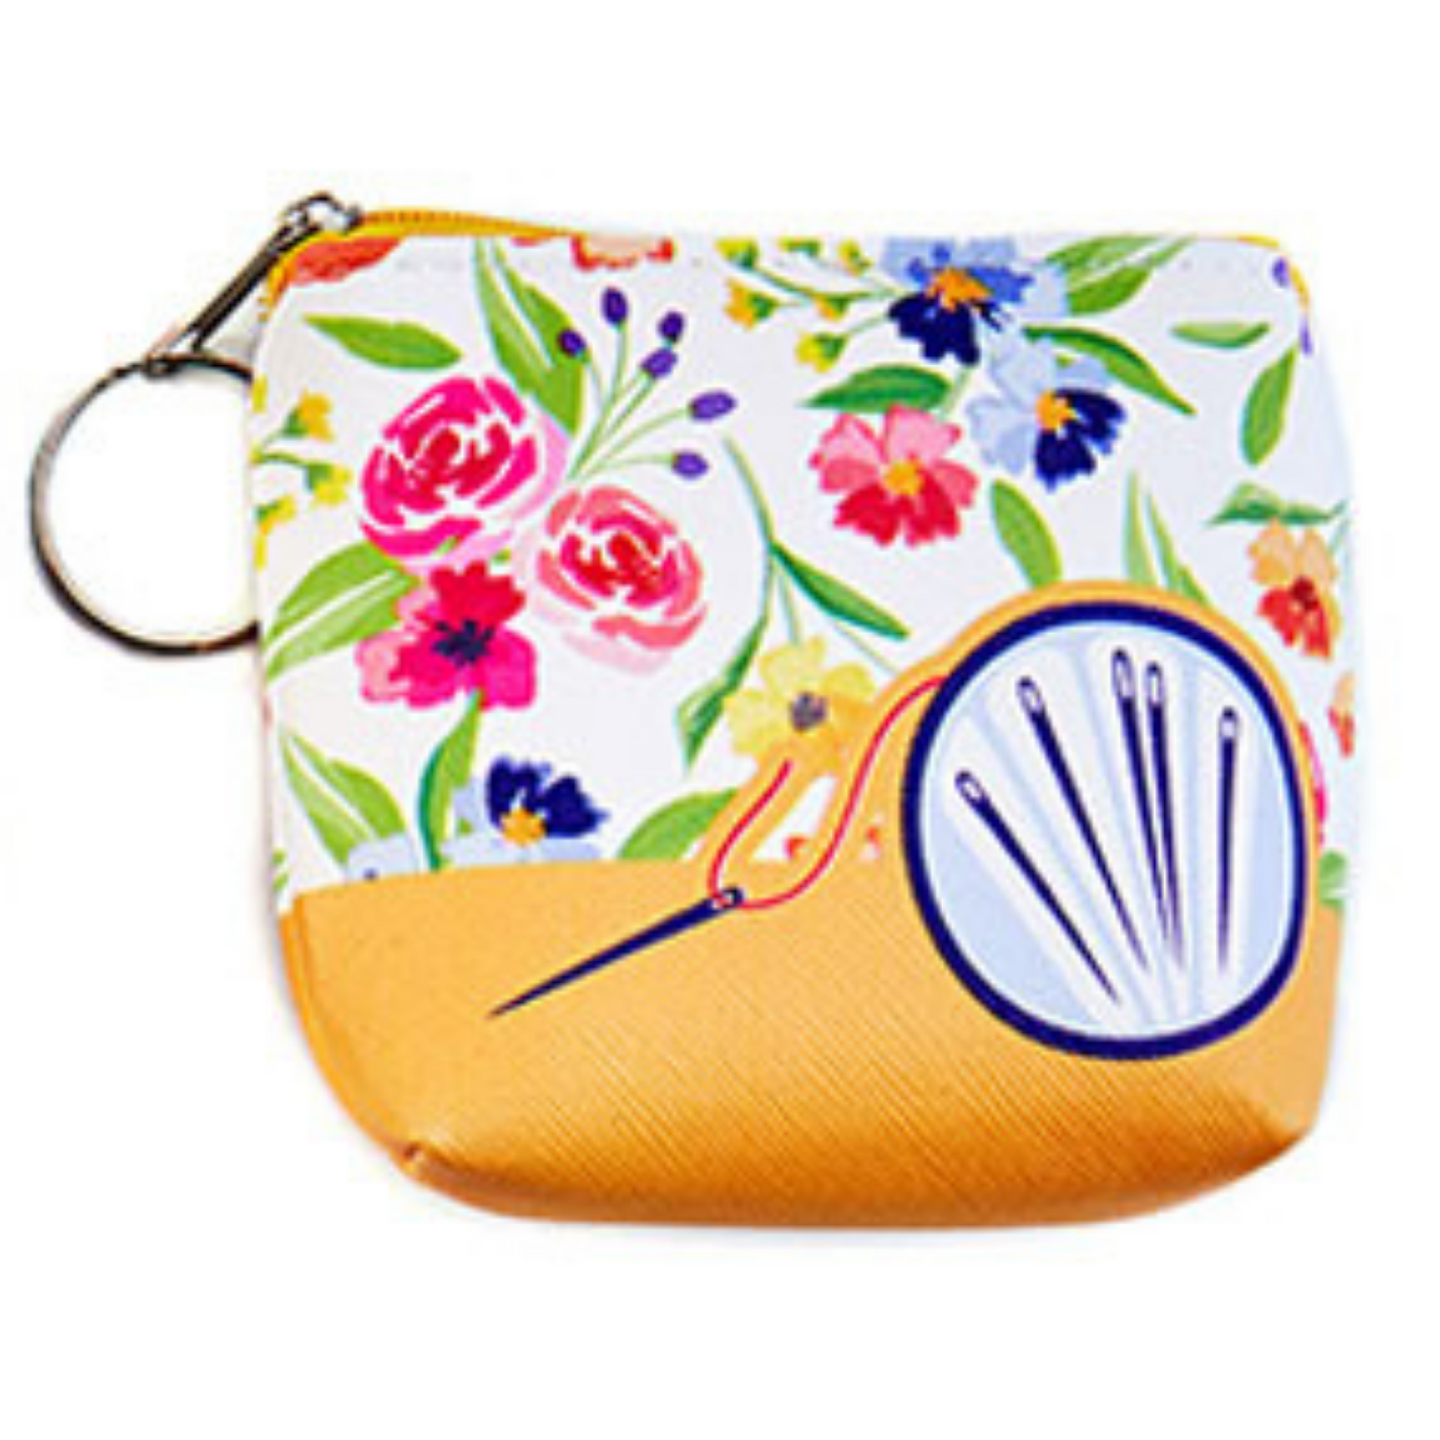 Coin Purse with Key Ring - Needles